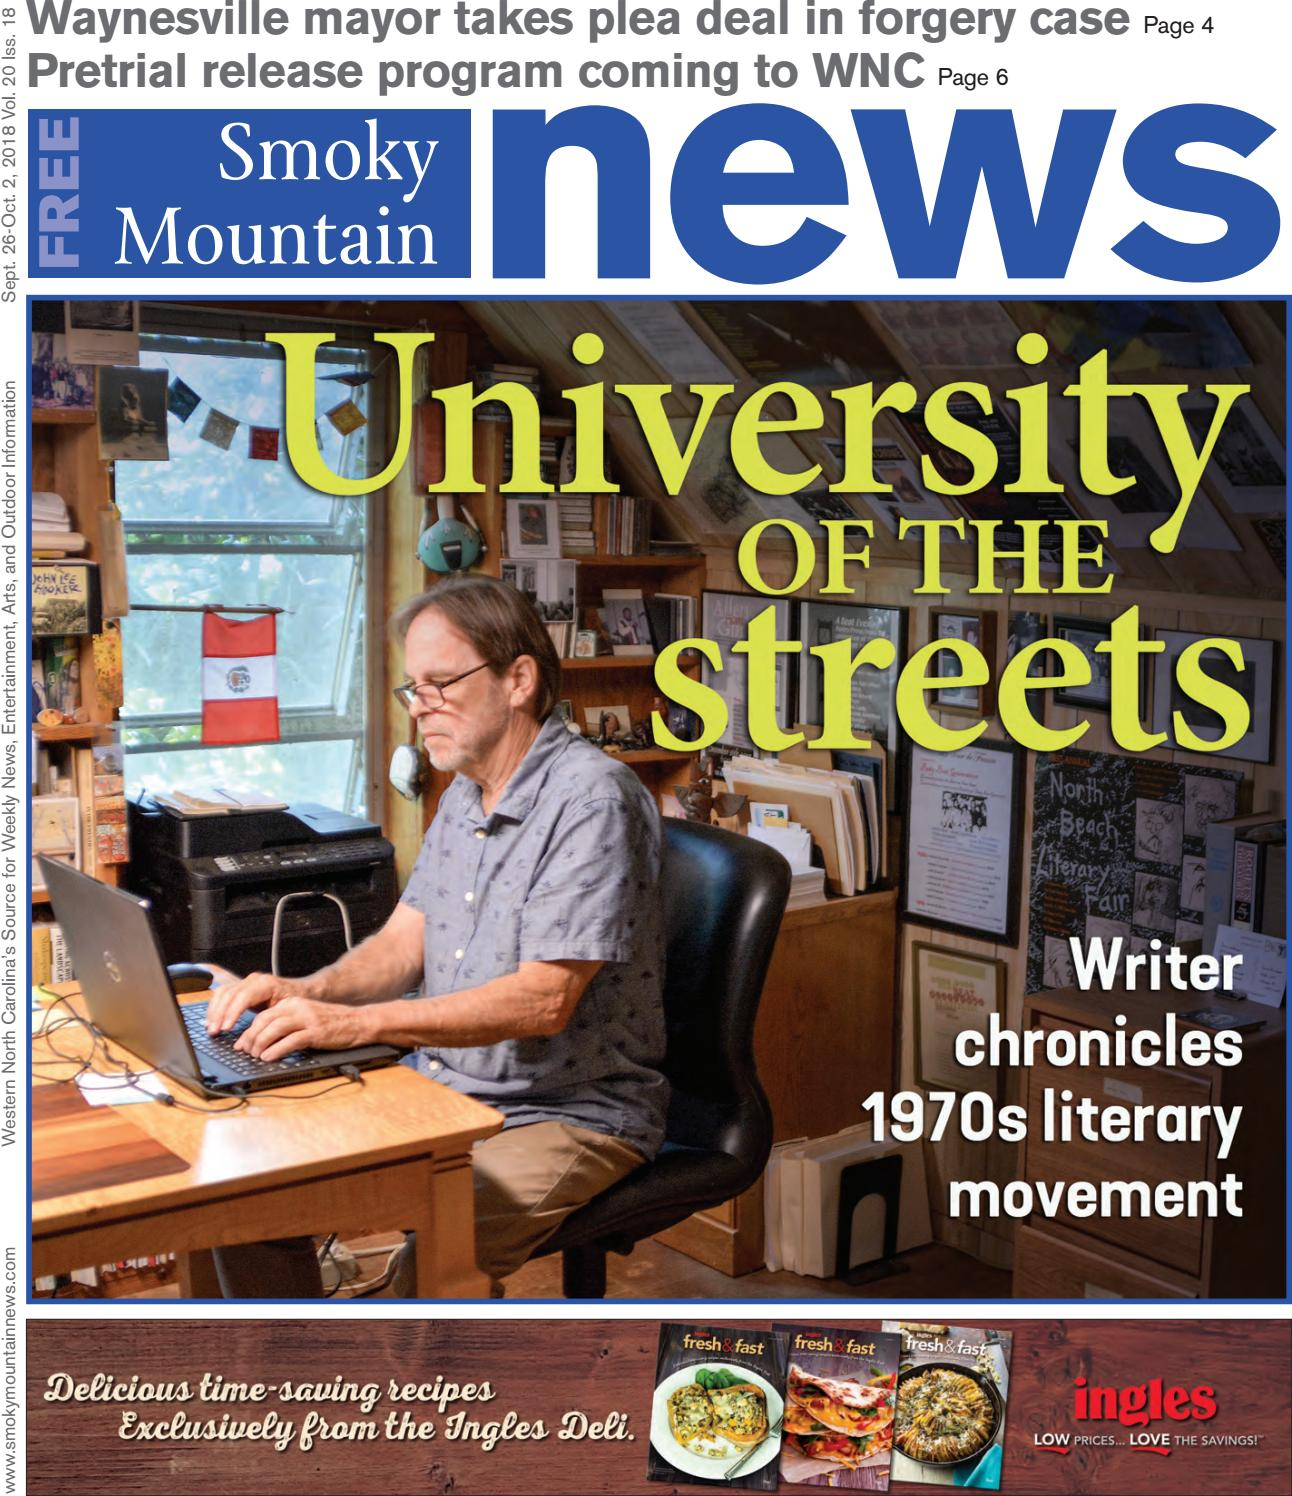 SMN 09 26 18 by Smoky Mountain News - issuu